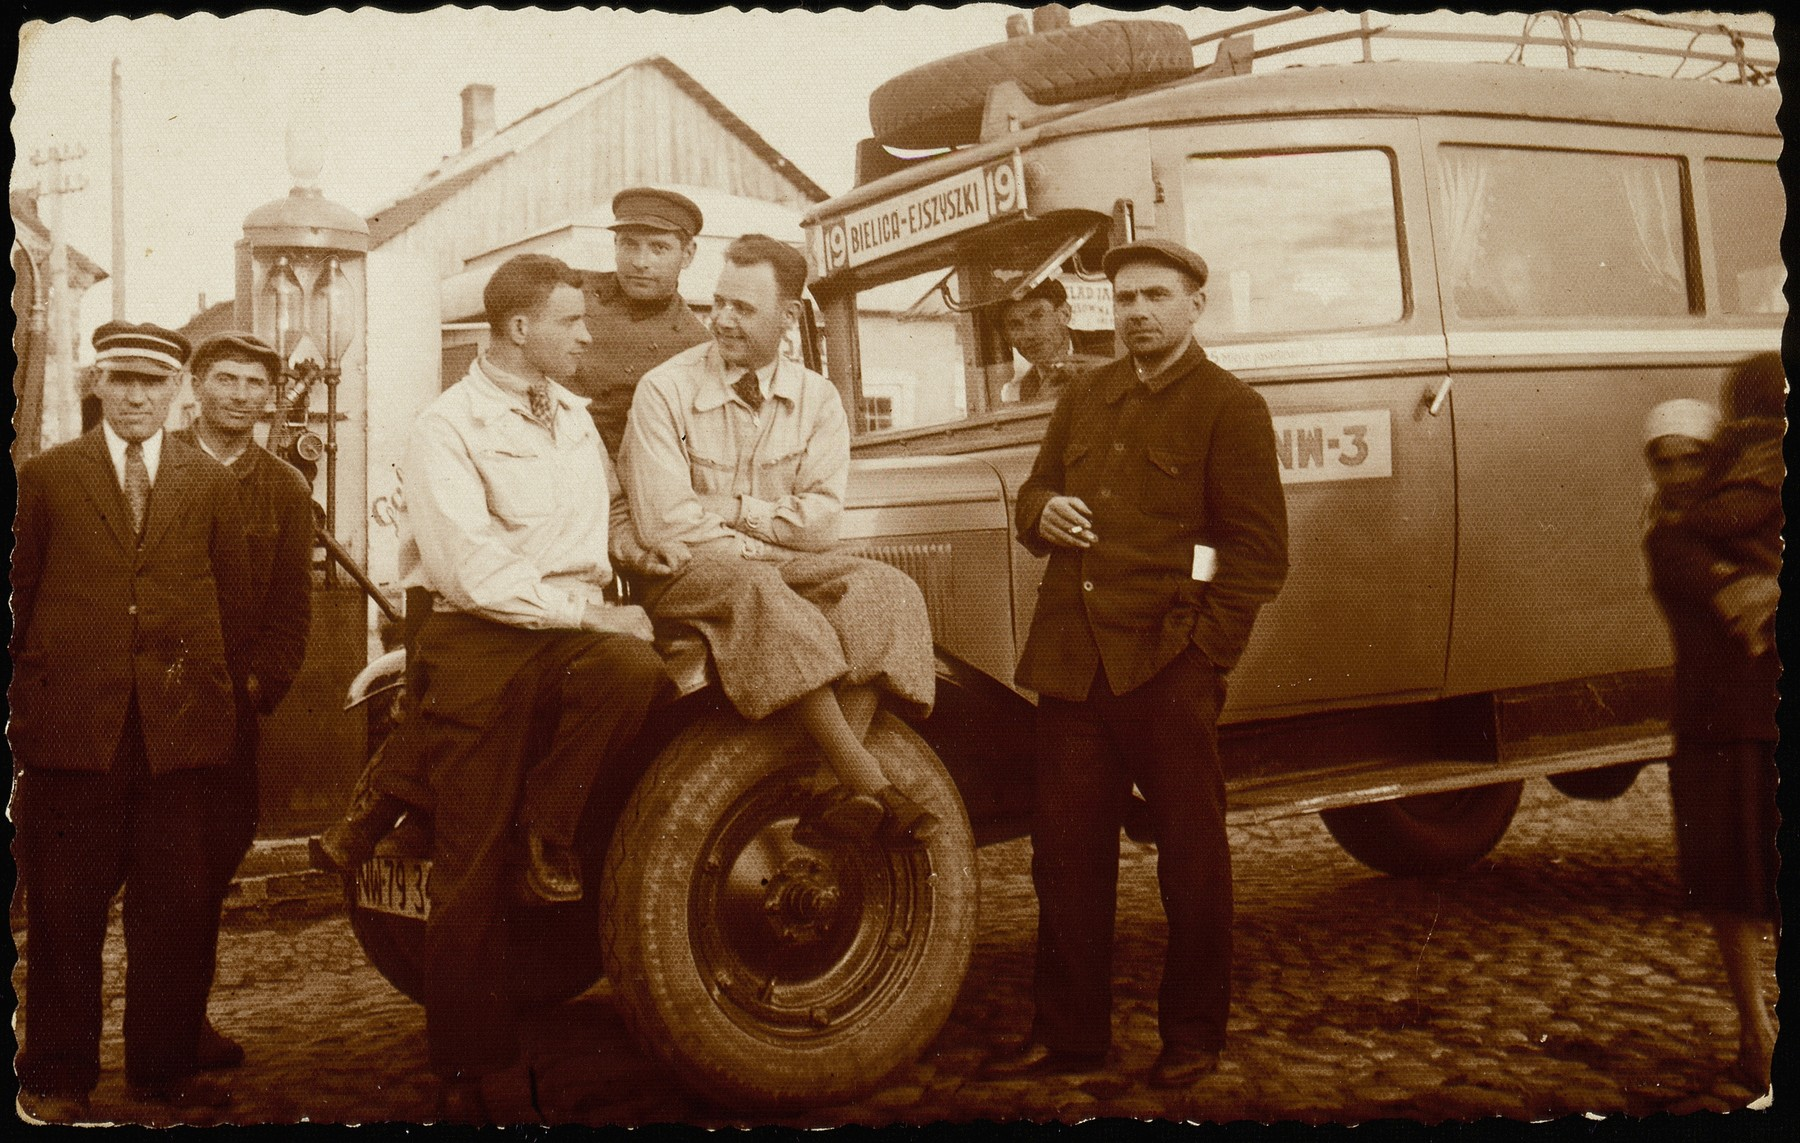 A group of men gather by the Bielica-Ejszyszki bus to Lida at the shtetl bus-stop and gasoline pump.   (Right  to left)  Moshe Slonimski, in the driver's seat is Israel Erlich, between the two Polish drivers is Yankele Krisilov, the shtetl bus driver, Avraham Asner (uncle of Ed Asner), in front of the gasoline pump and Yankele Krisilov, who survived in Russia.  The others were murdered by the Germans and the AK.